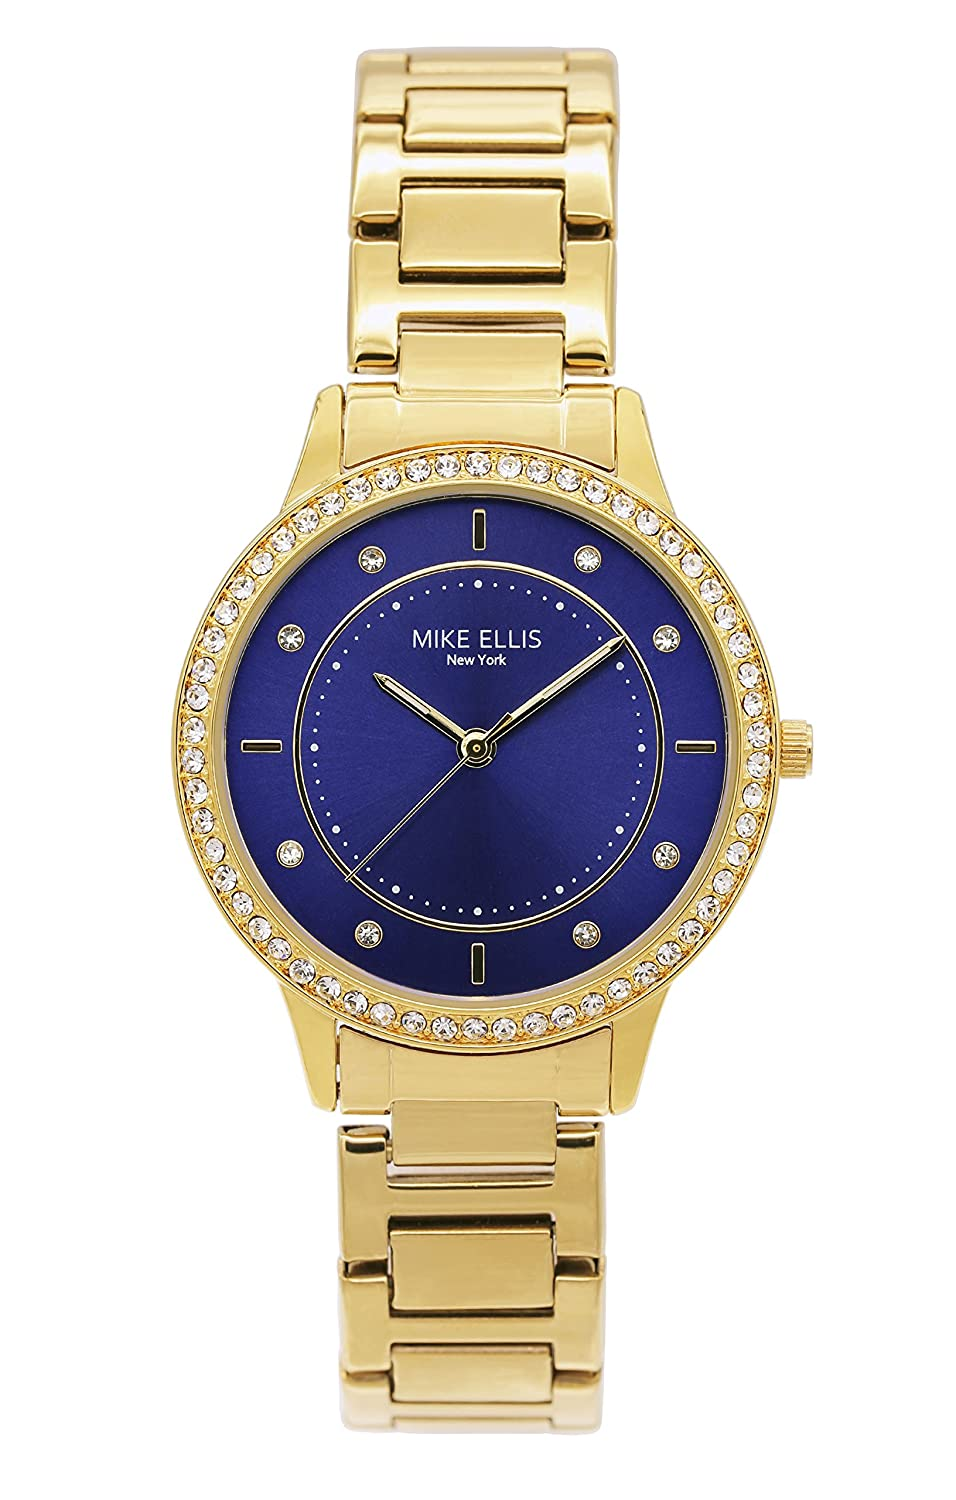 Mike Ellis New York Damen-Armbanduhr Blueline Analog Quarz Edelstahl SM4612A